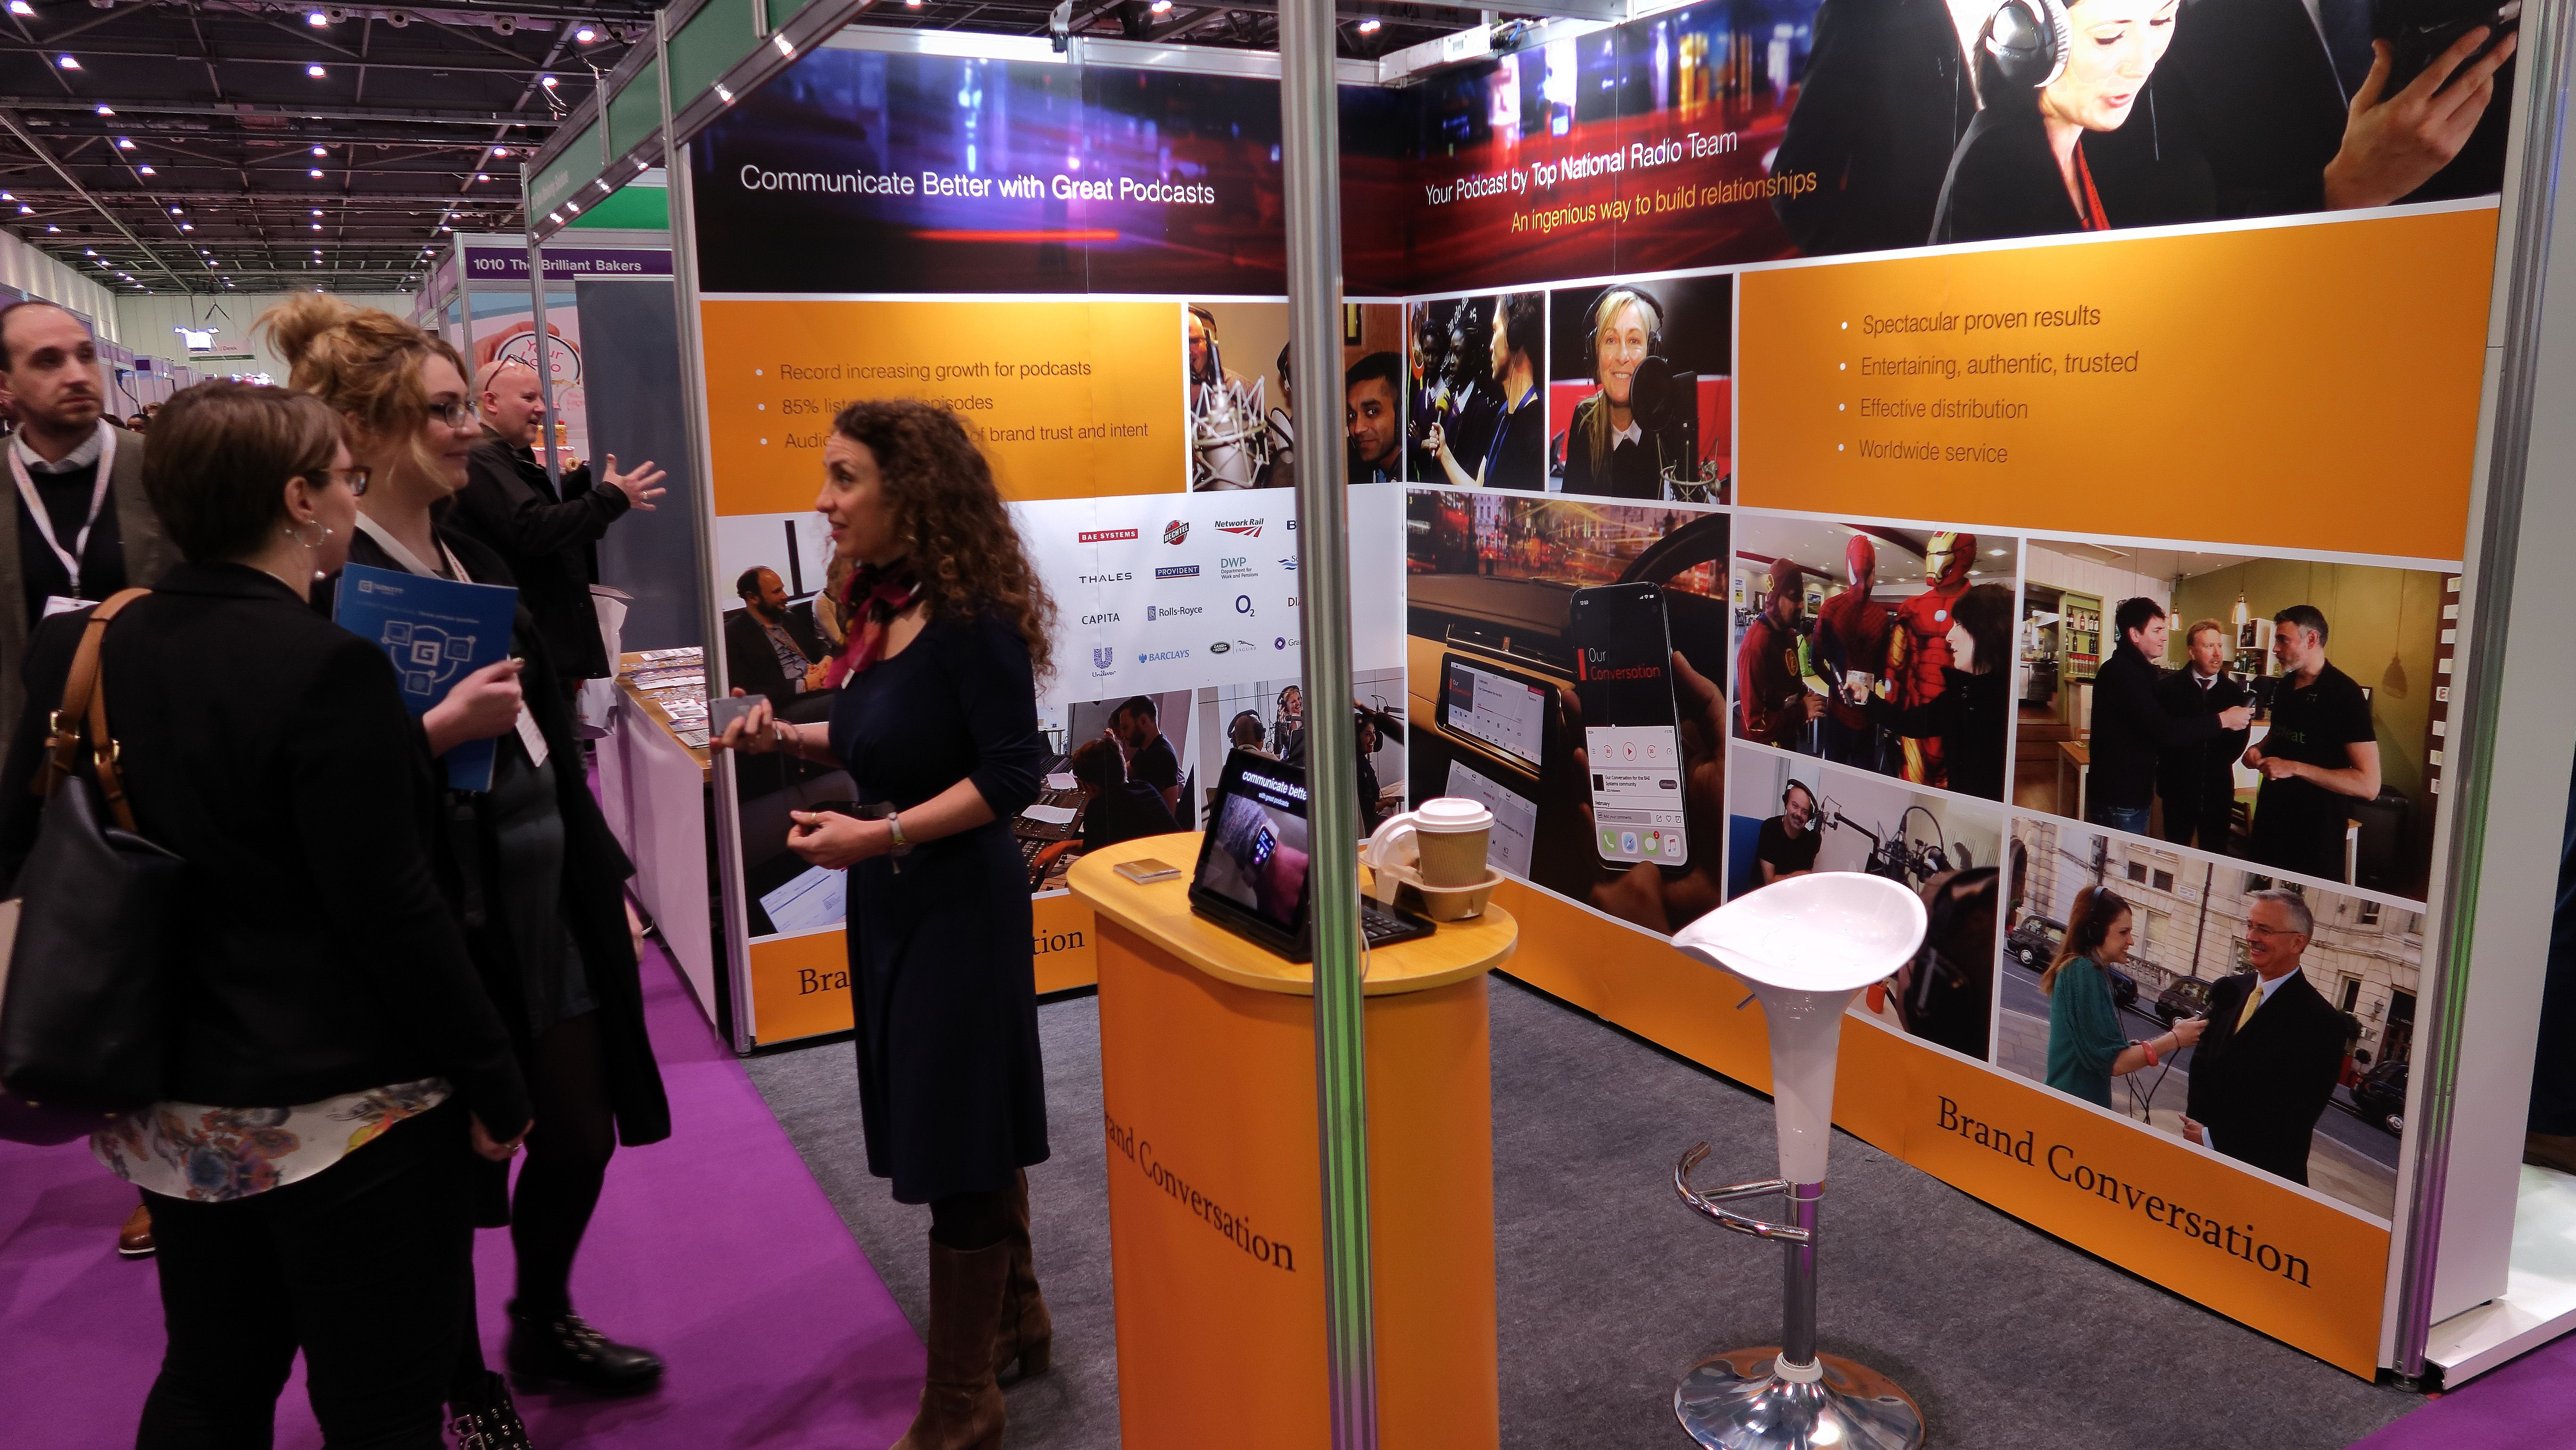 Shell Clad Exhibition Stand : Shell clad shell clad exhibition stands exhibition display